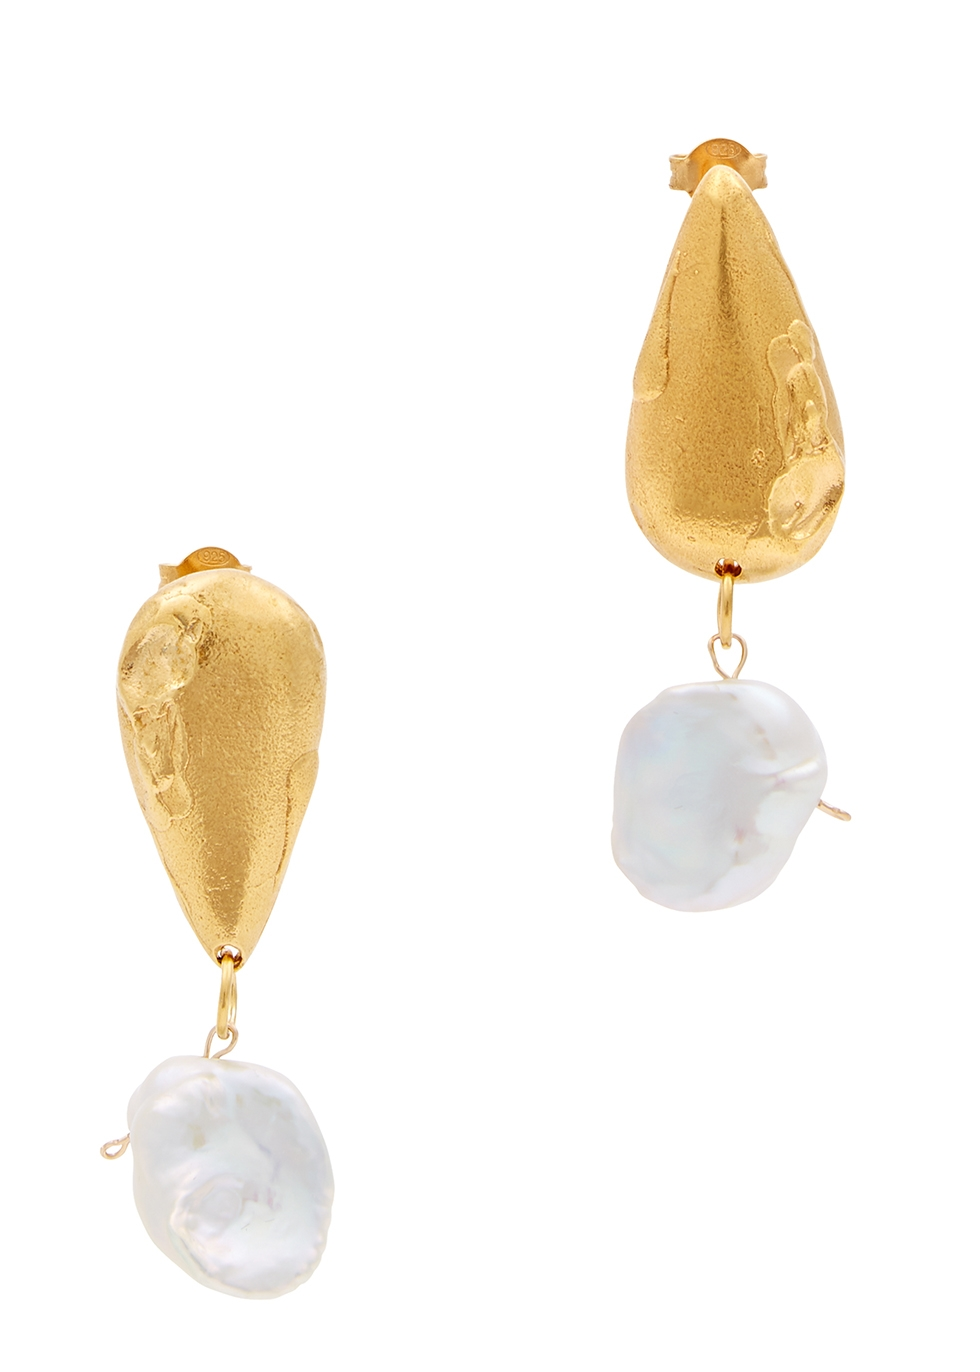 ALIGERHI Fear And The Desire Gold-Plated Drop Earrings